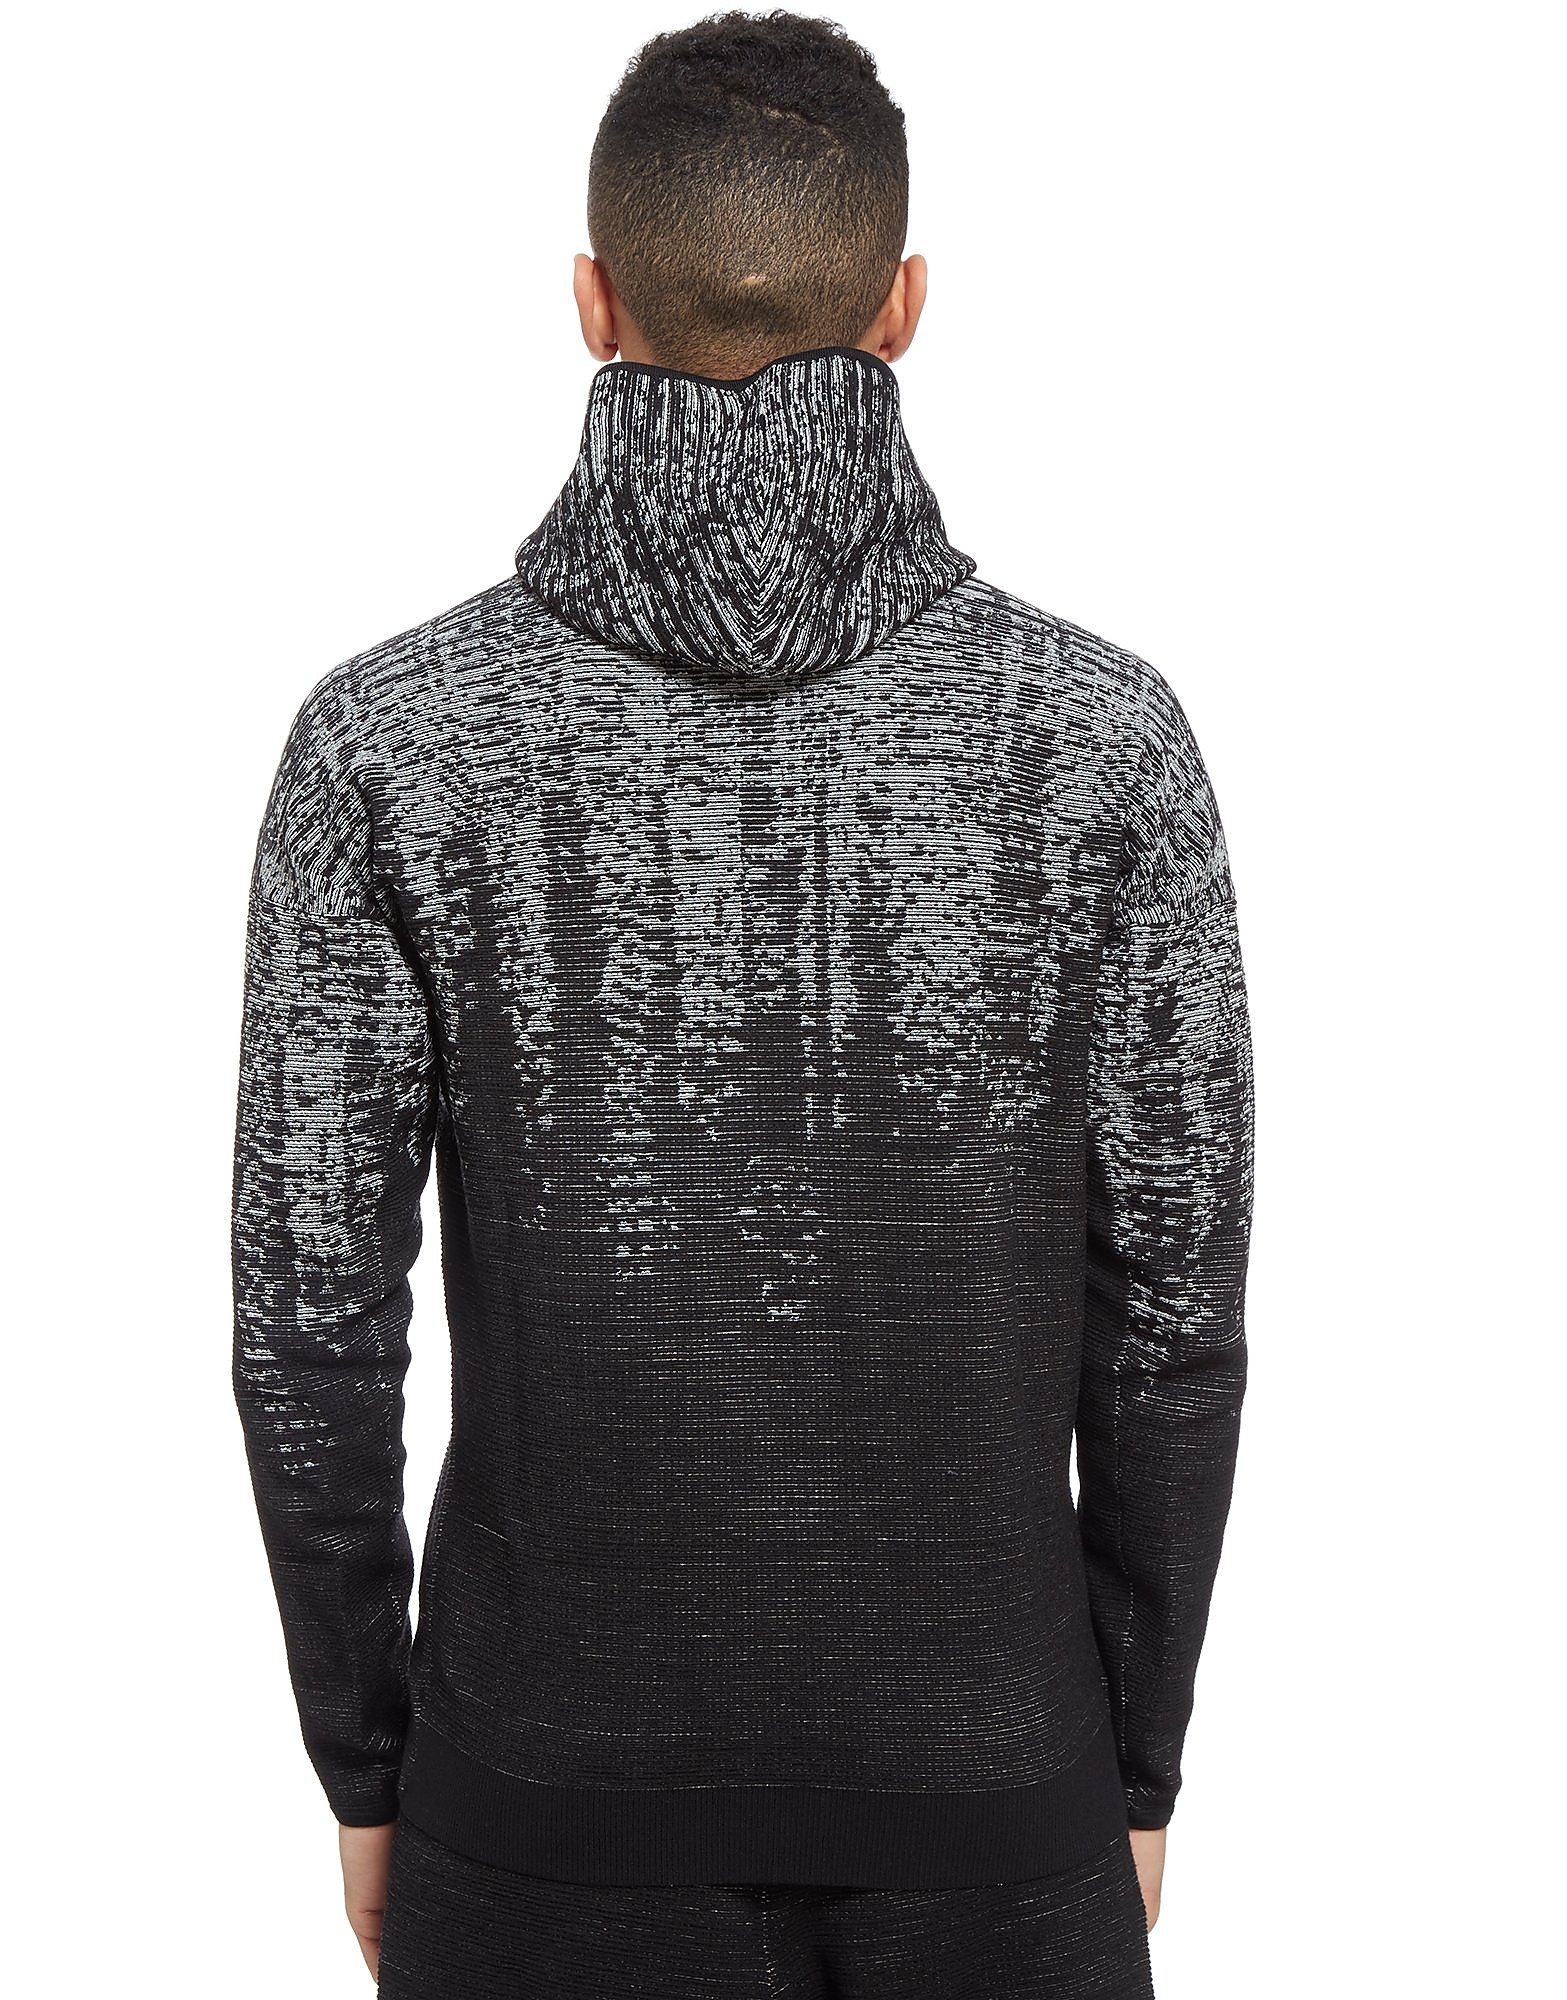 adidas Z.N.E. Pulse Knit Hoodie